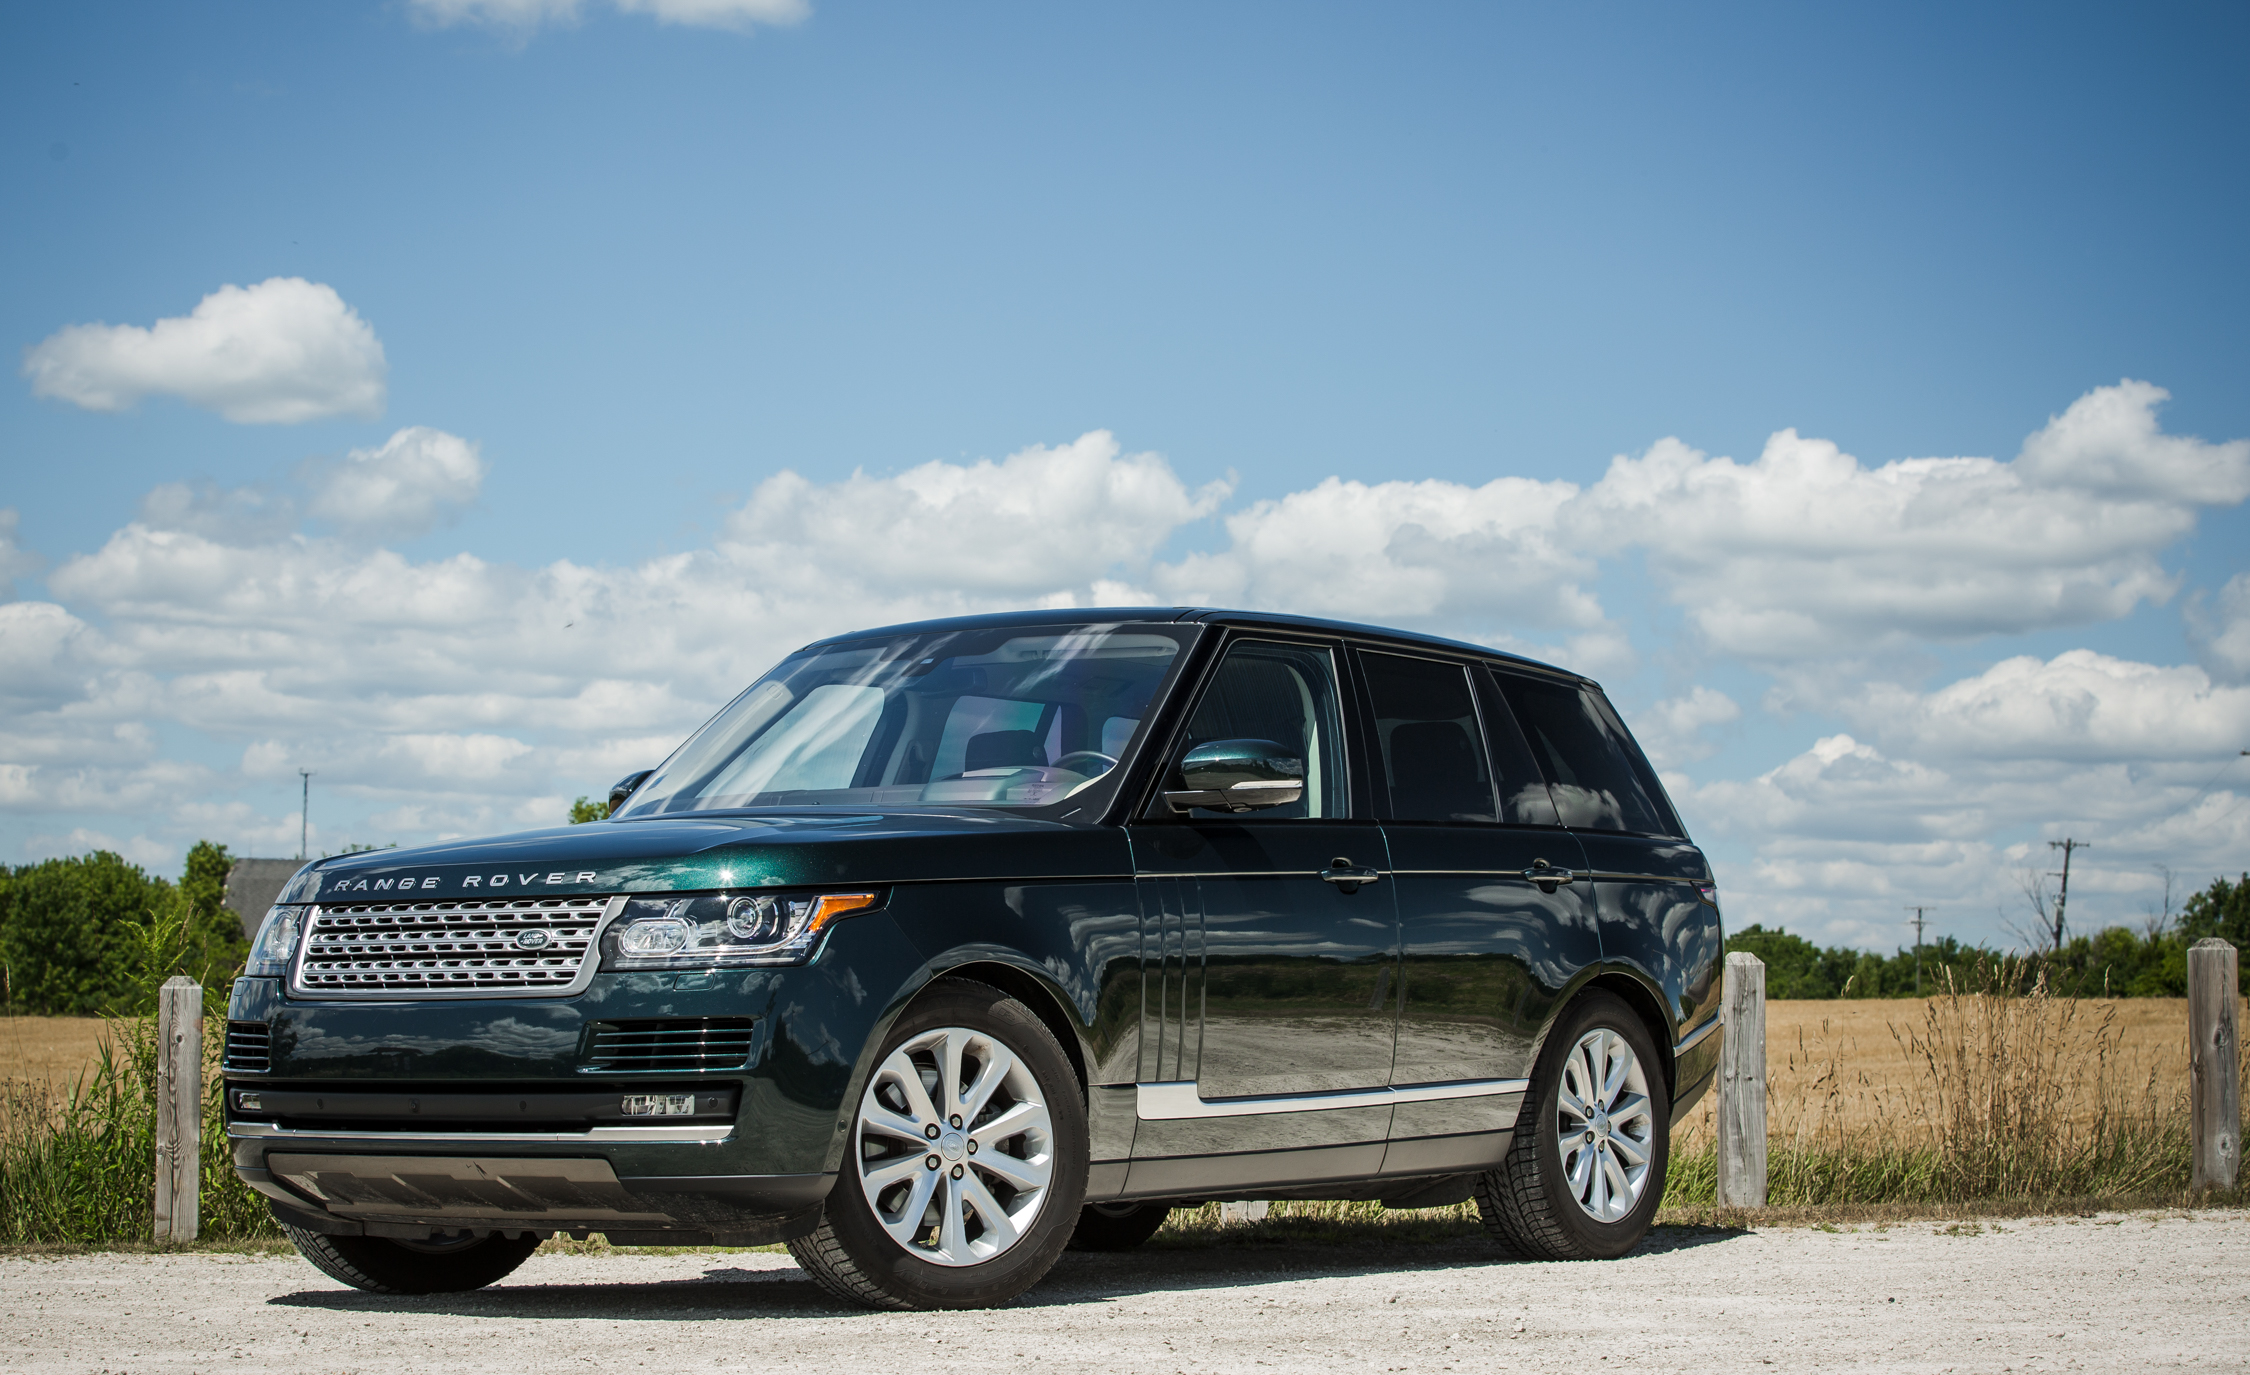 2016 Land Rover Range Rover HSE Td (Photo 3 of 8)